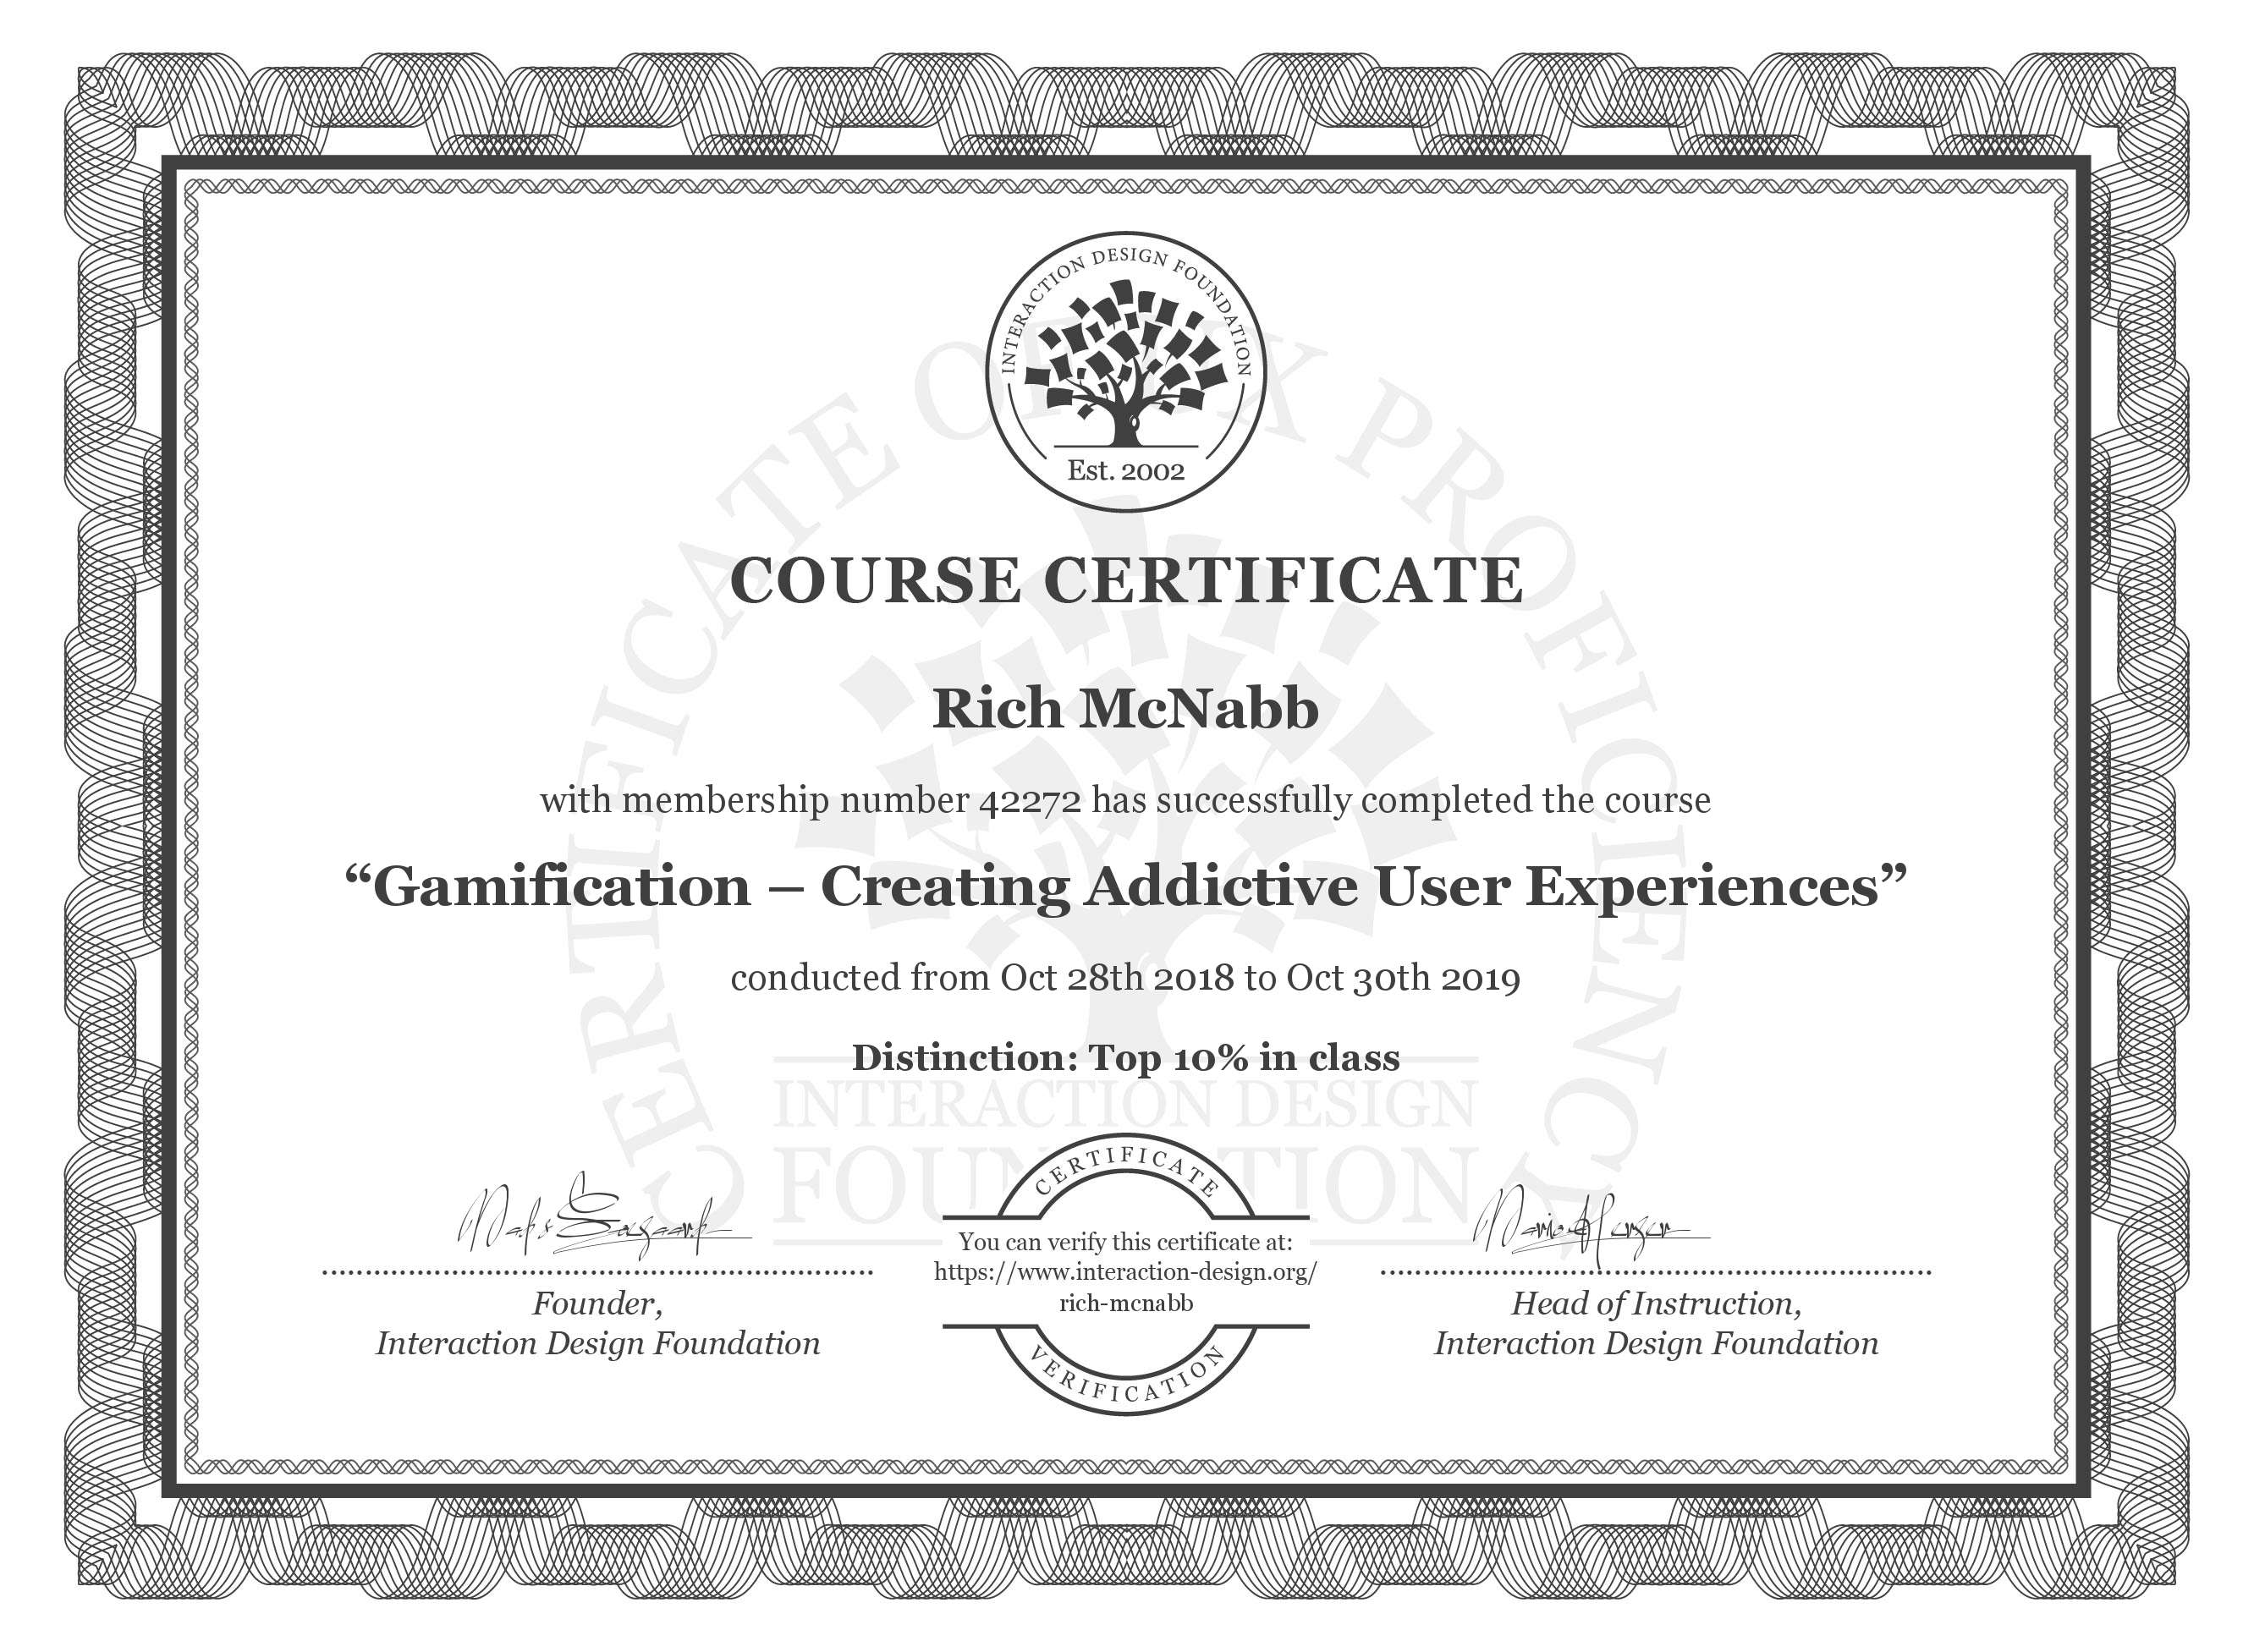 Gamification – Creating Addictive User Experiences